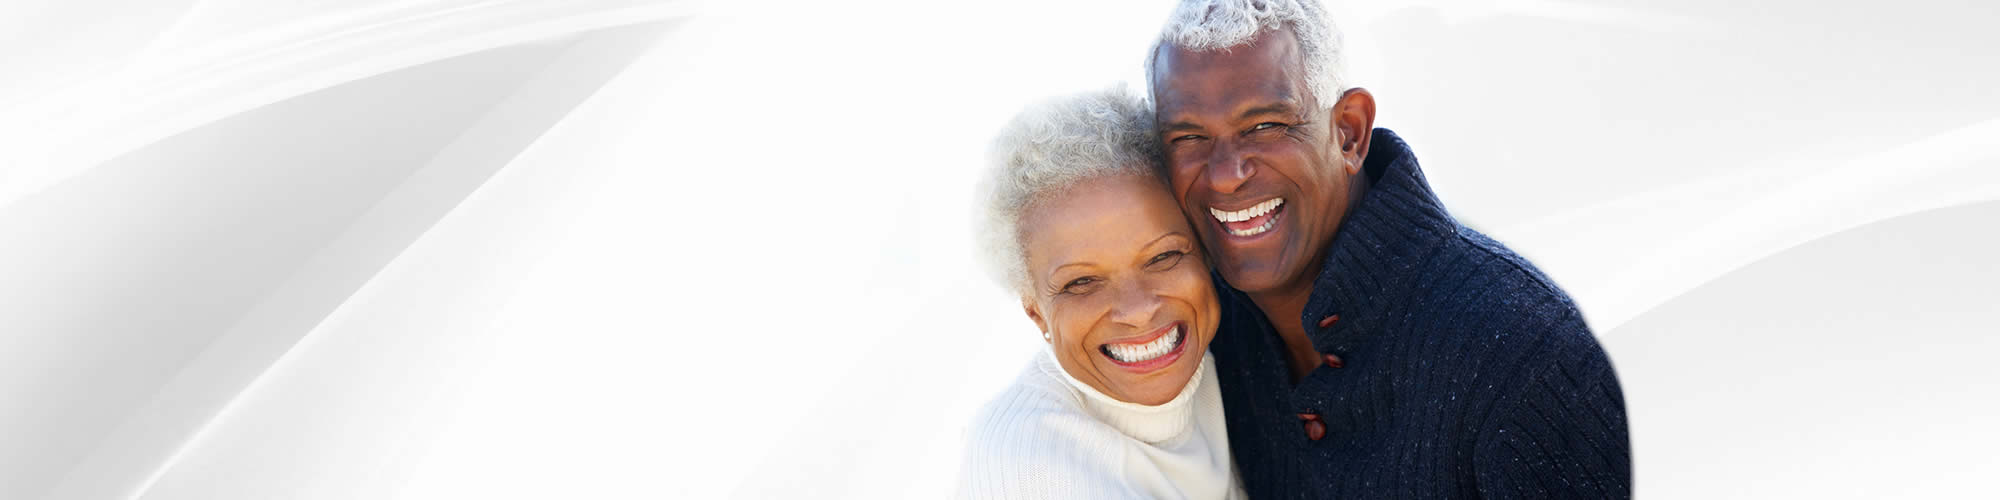 Dental Implants in Marlton NJ